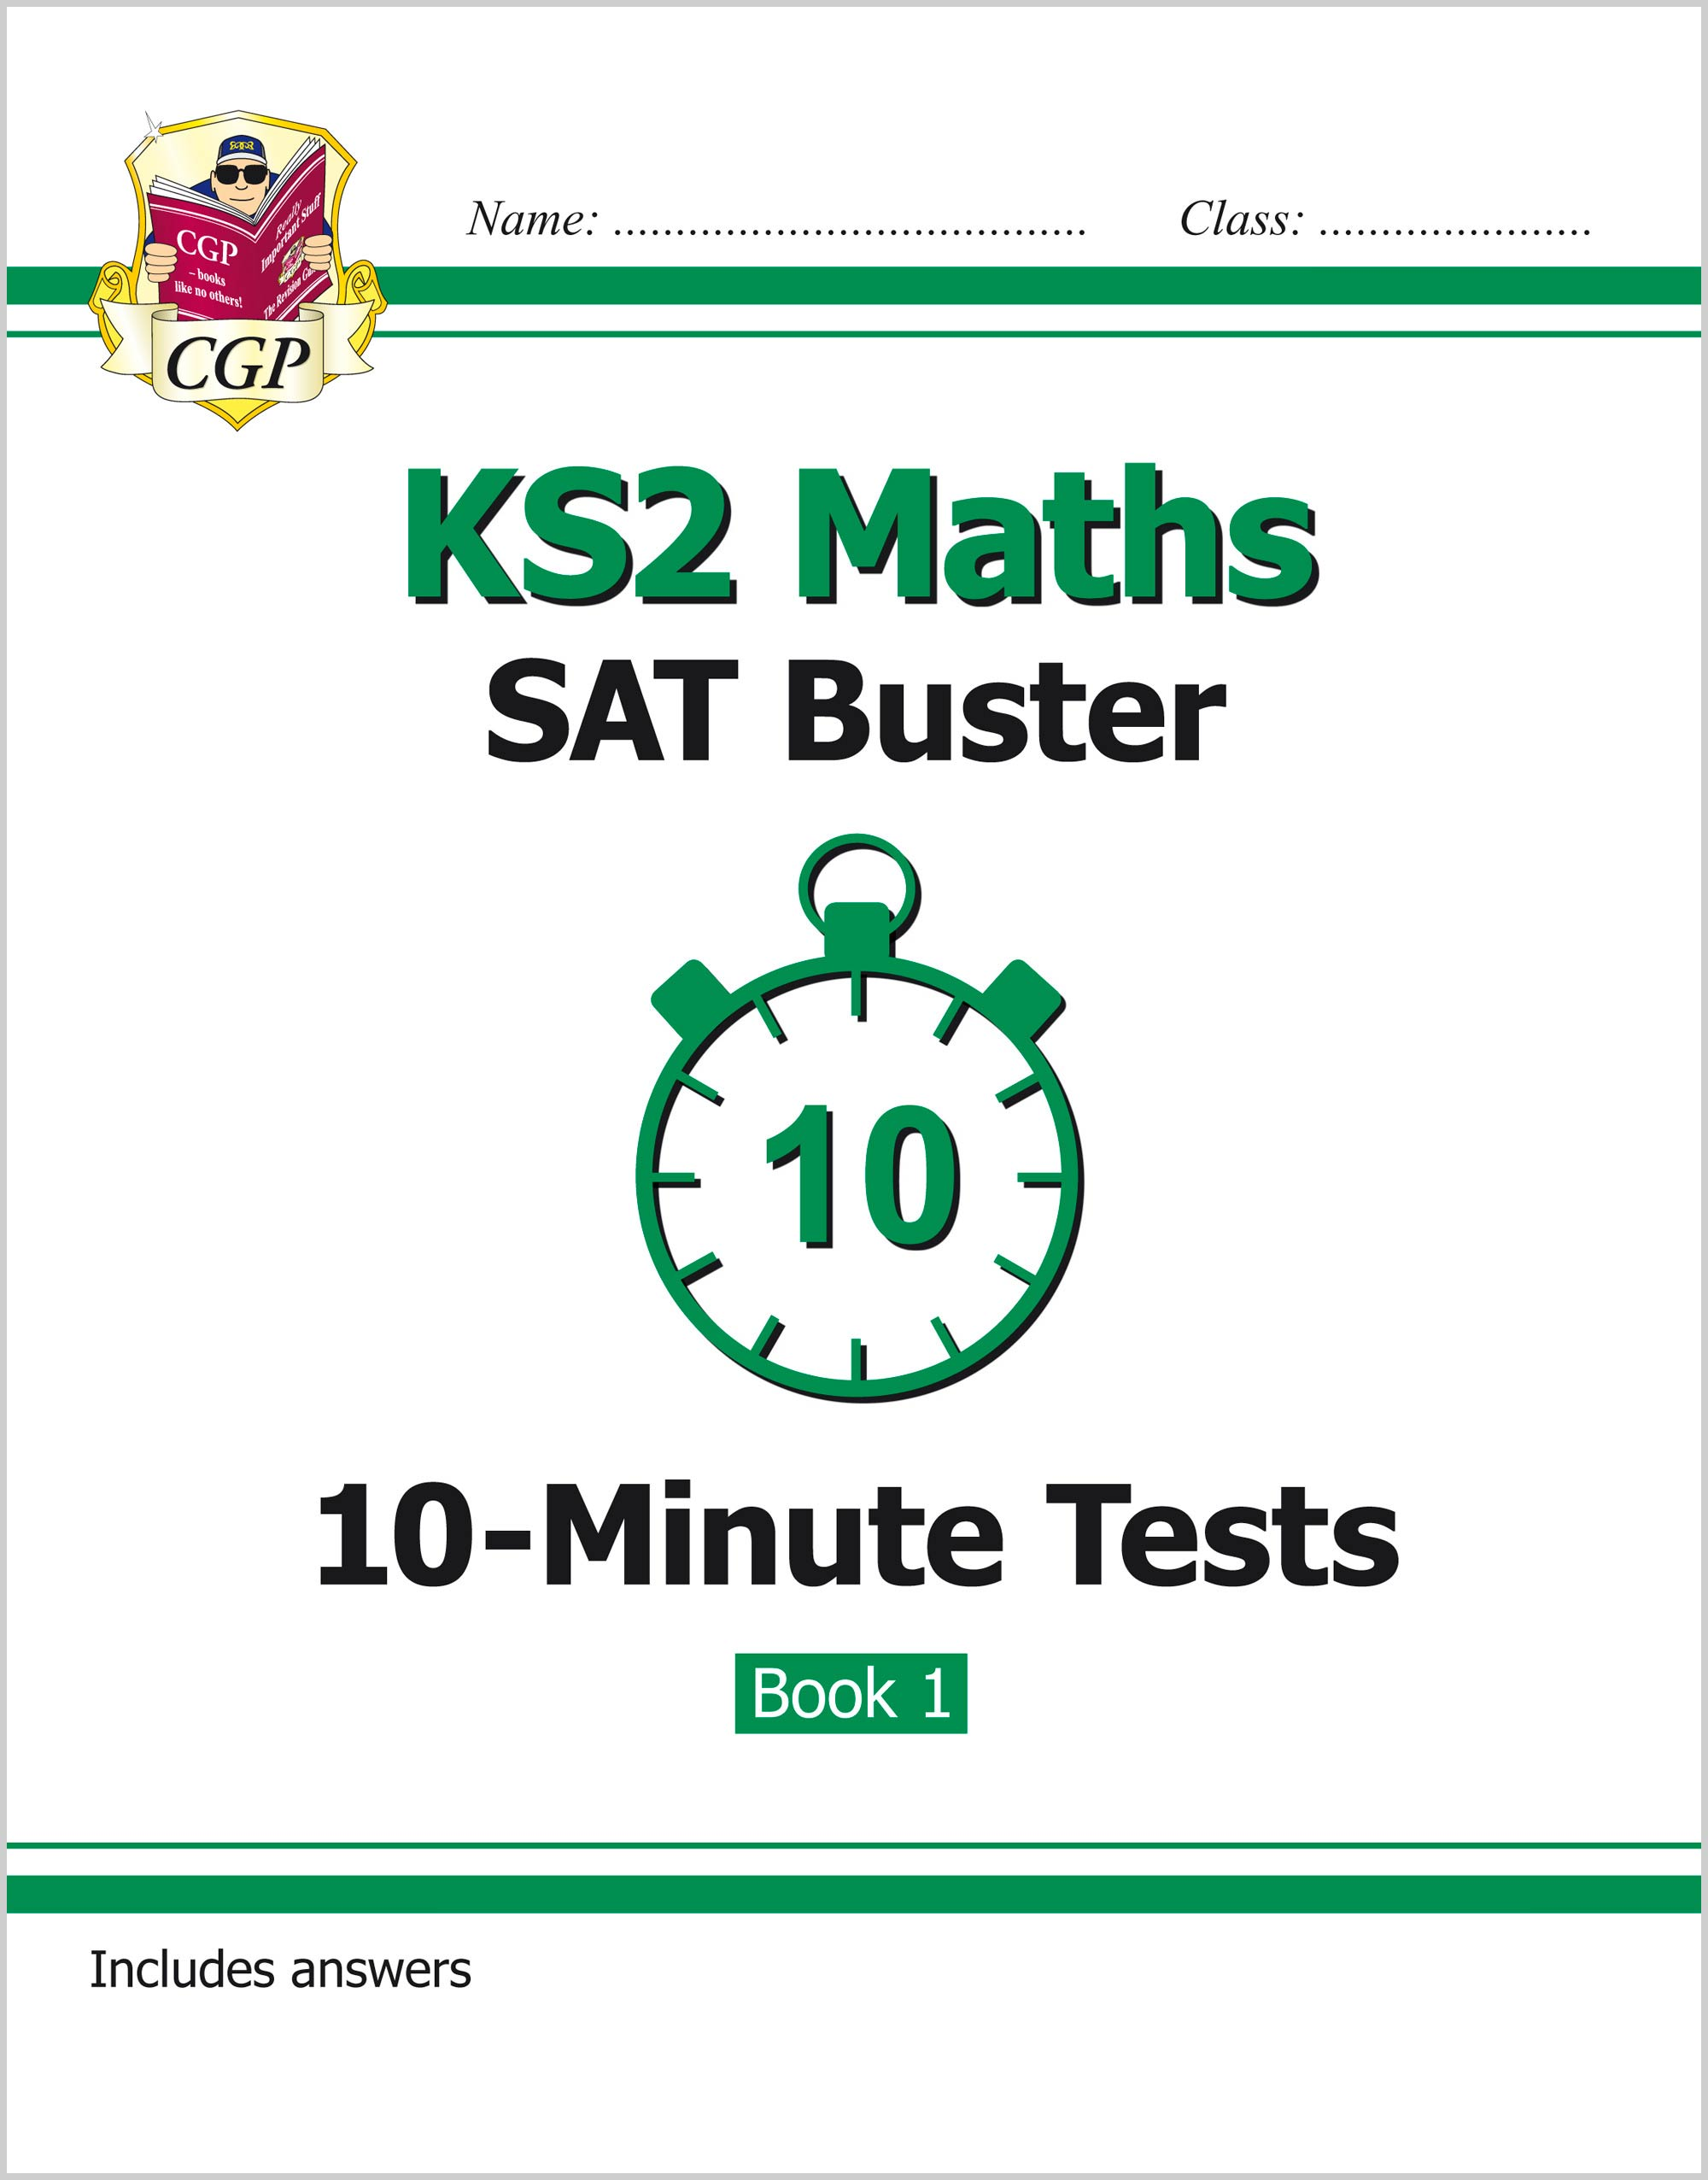 MXP22 - KS2 Maths SAT Buster: 10-Minute Tests Maths - Book 1 (for the 2020 tests)